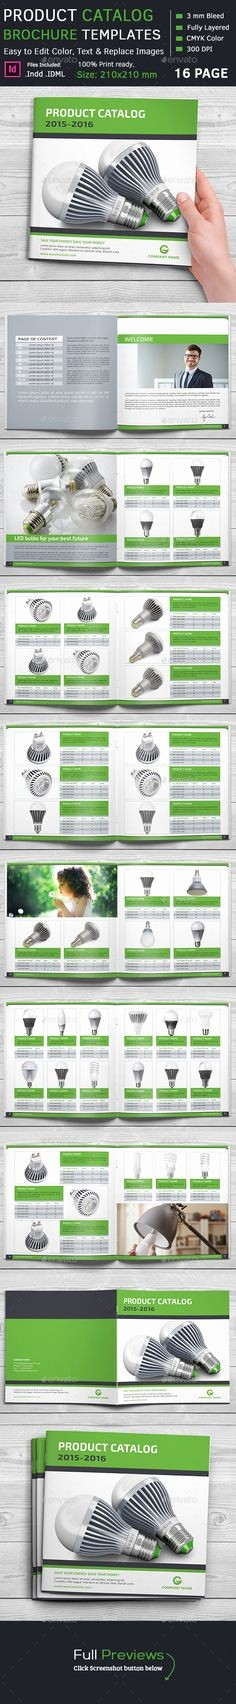 Product Catalog Template Free Download Unique Layout Verily Magazine Desing Editorial